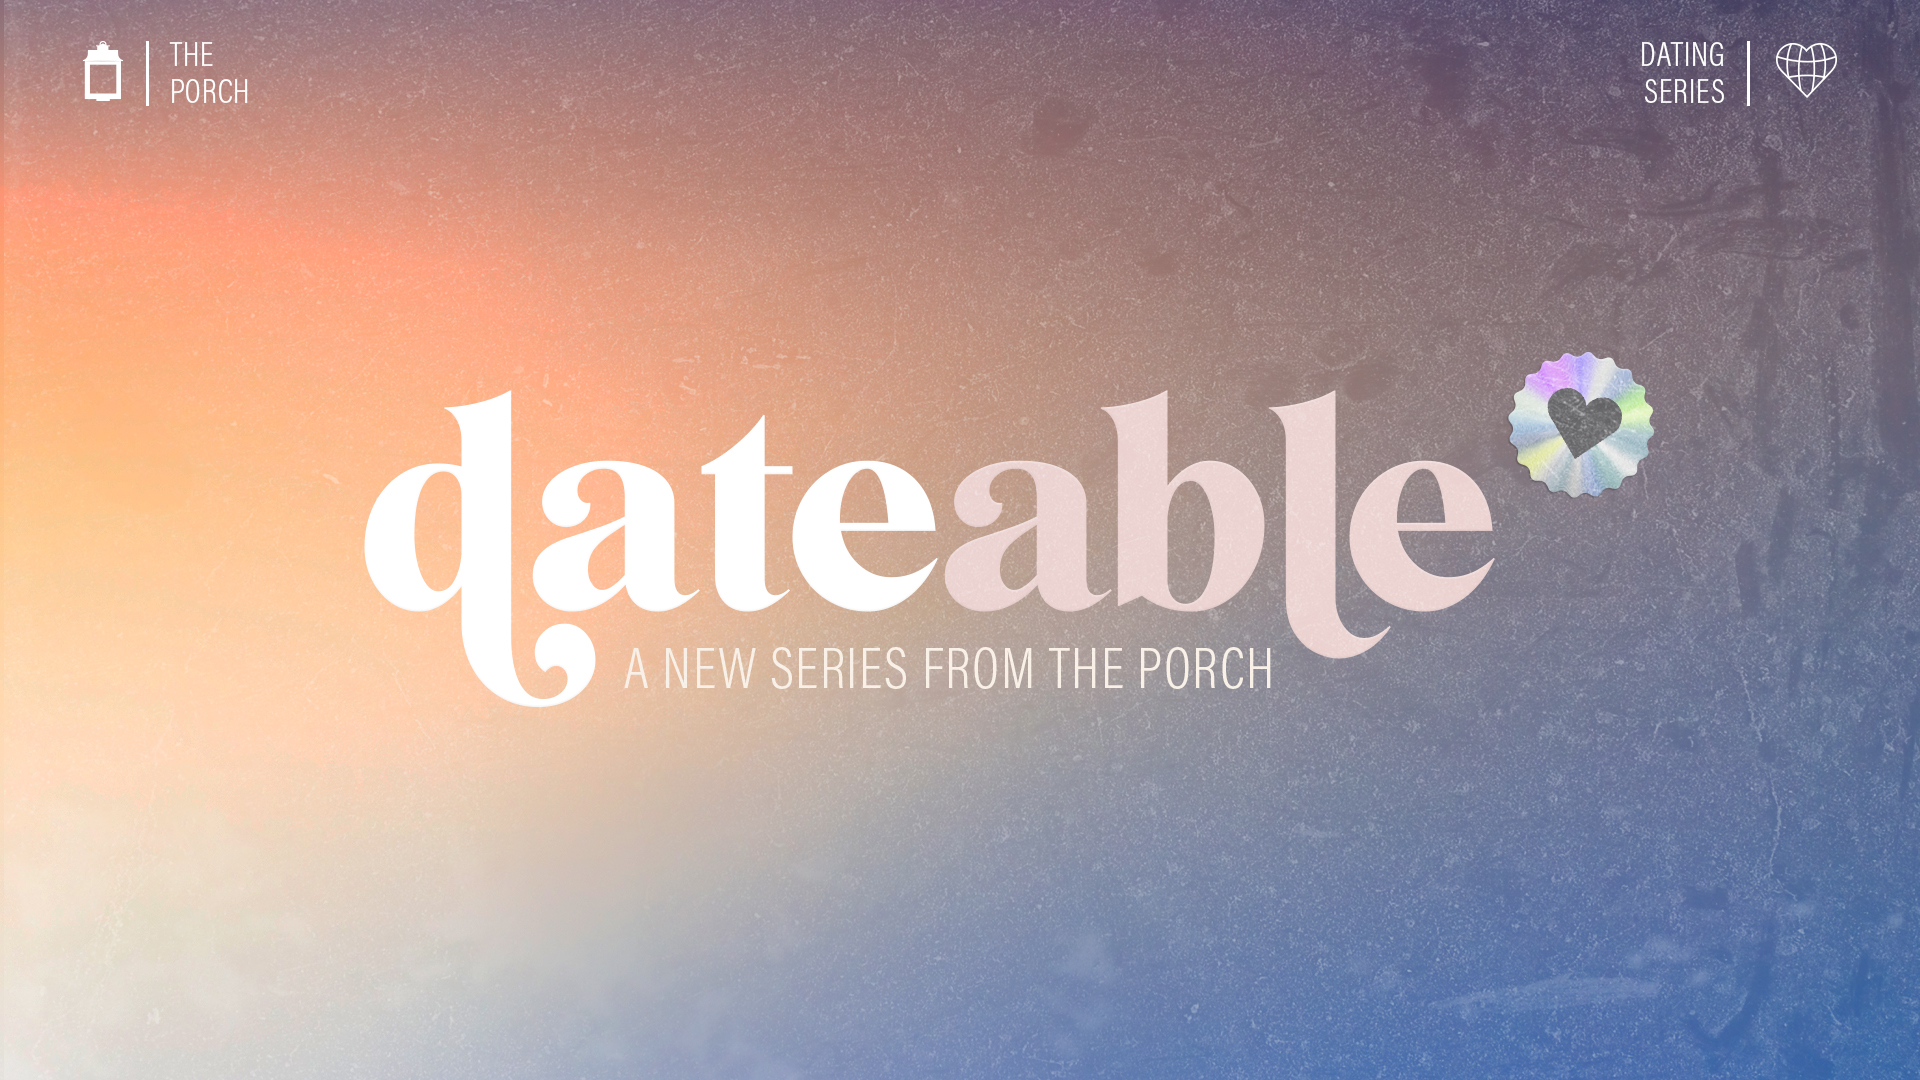 Dateable1920x1080